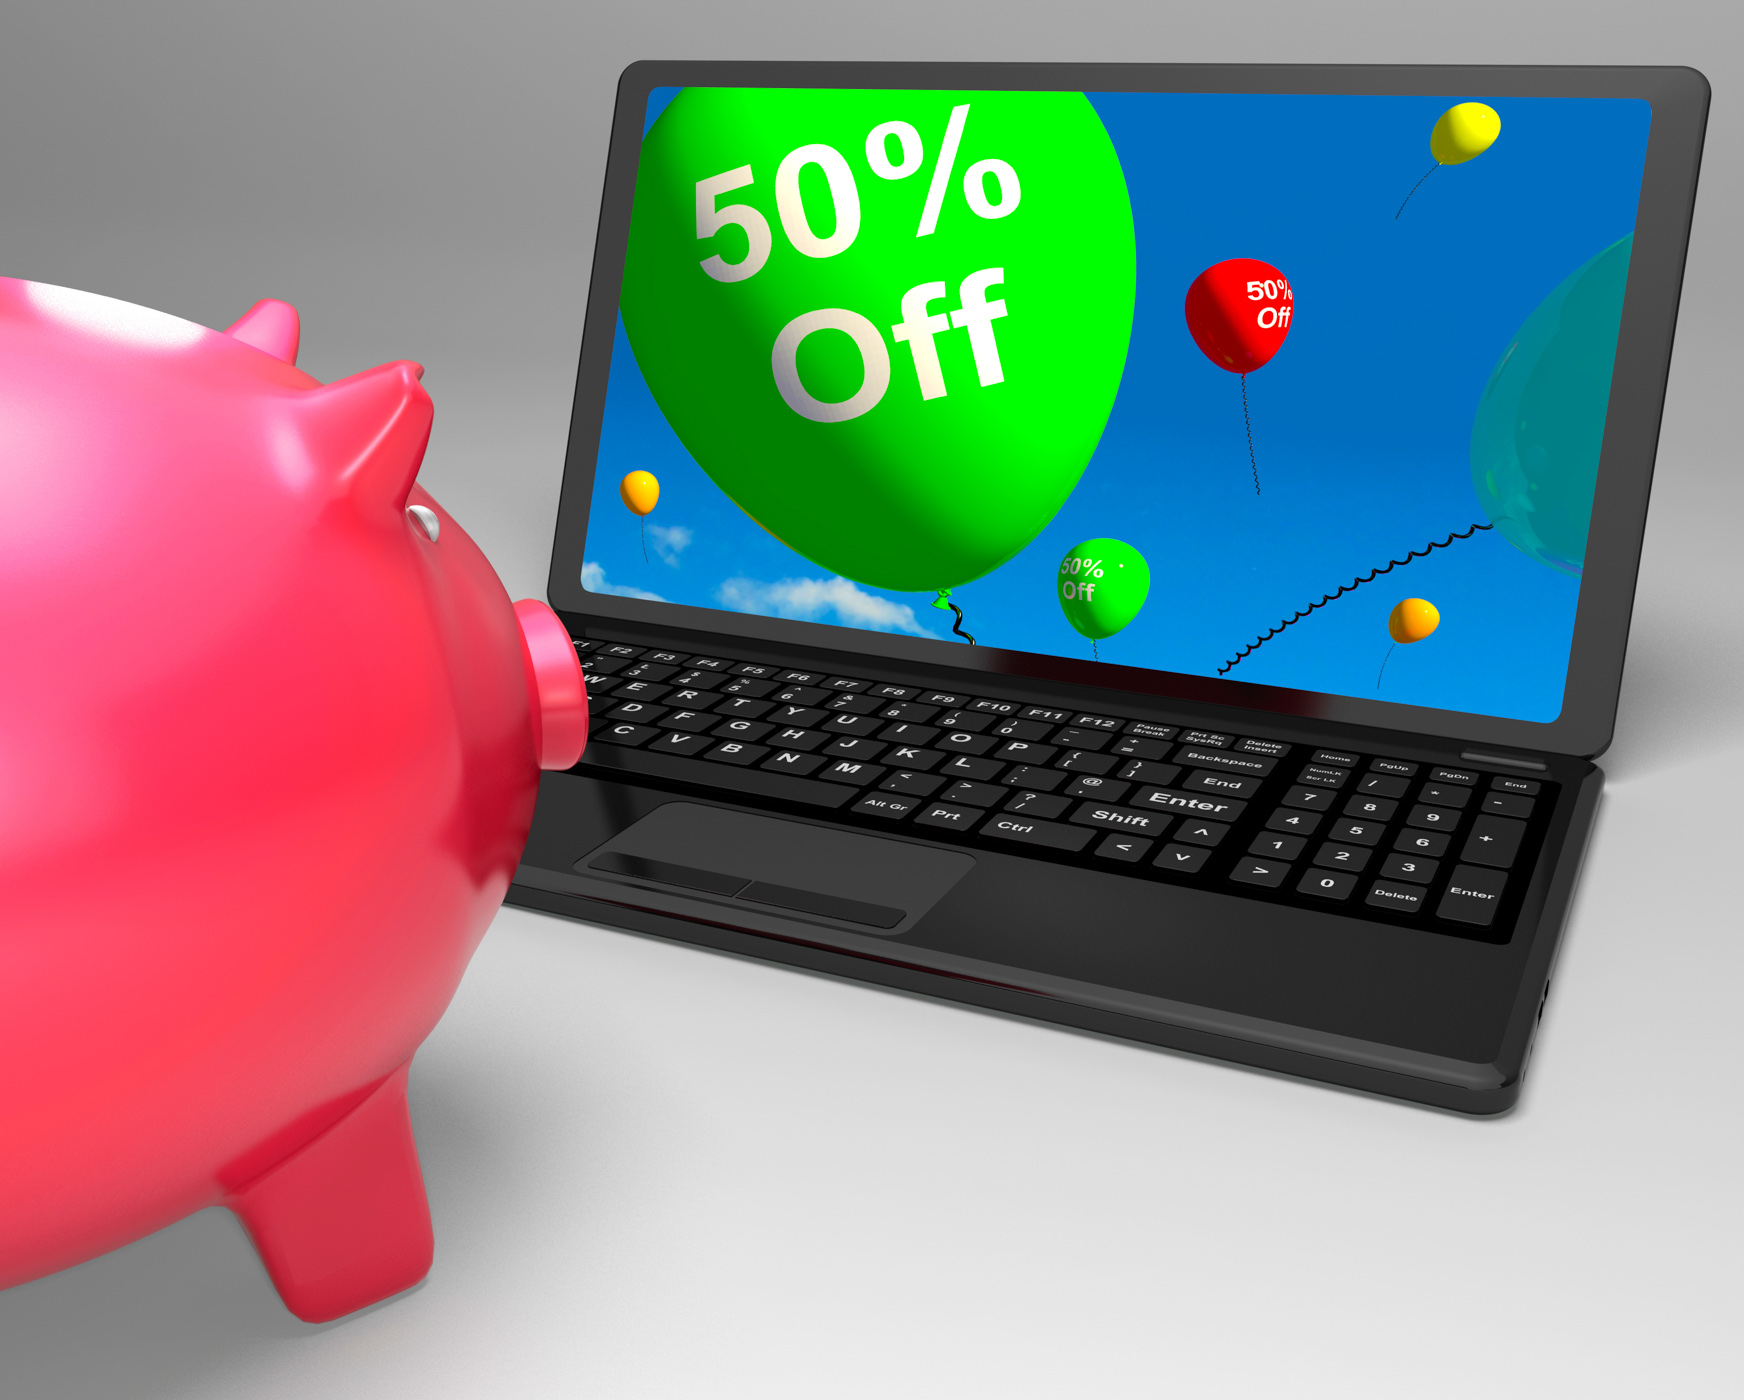 Fifty percent off on laptop showing cheap products photo